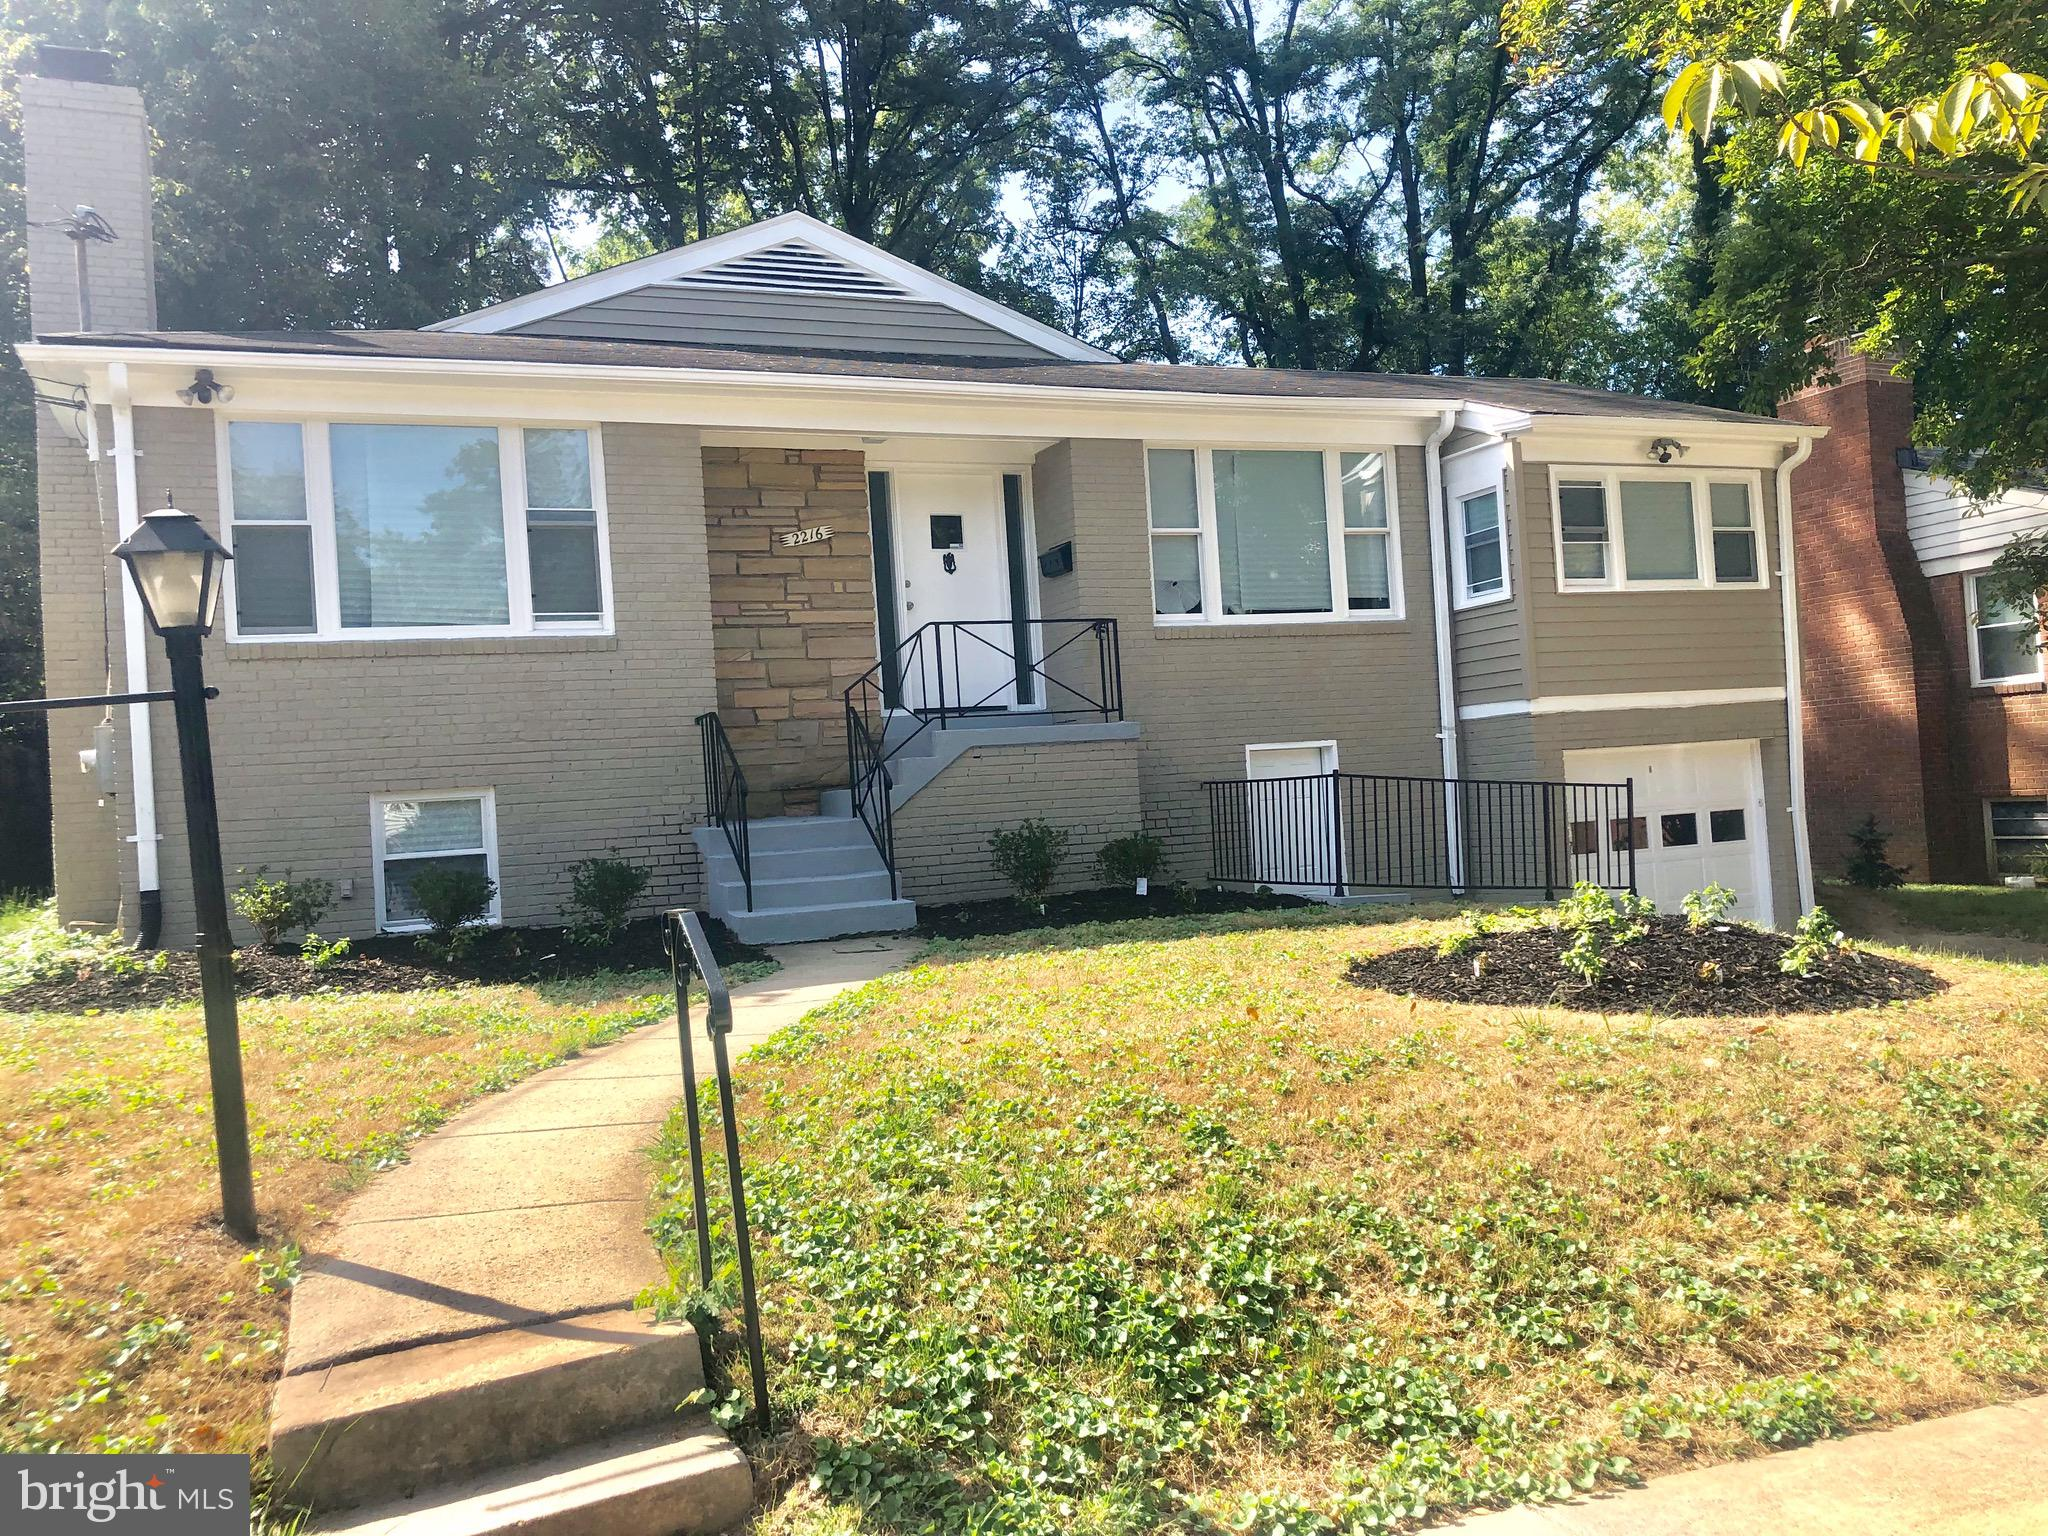 2216 WESTVIEW Dr, Silver Spring, MD, 20910